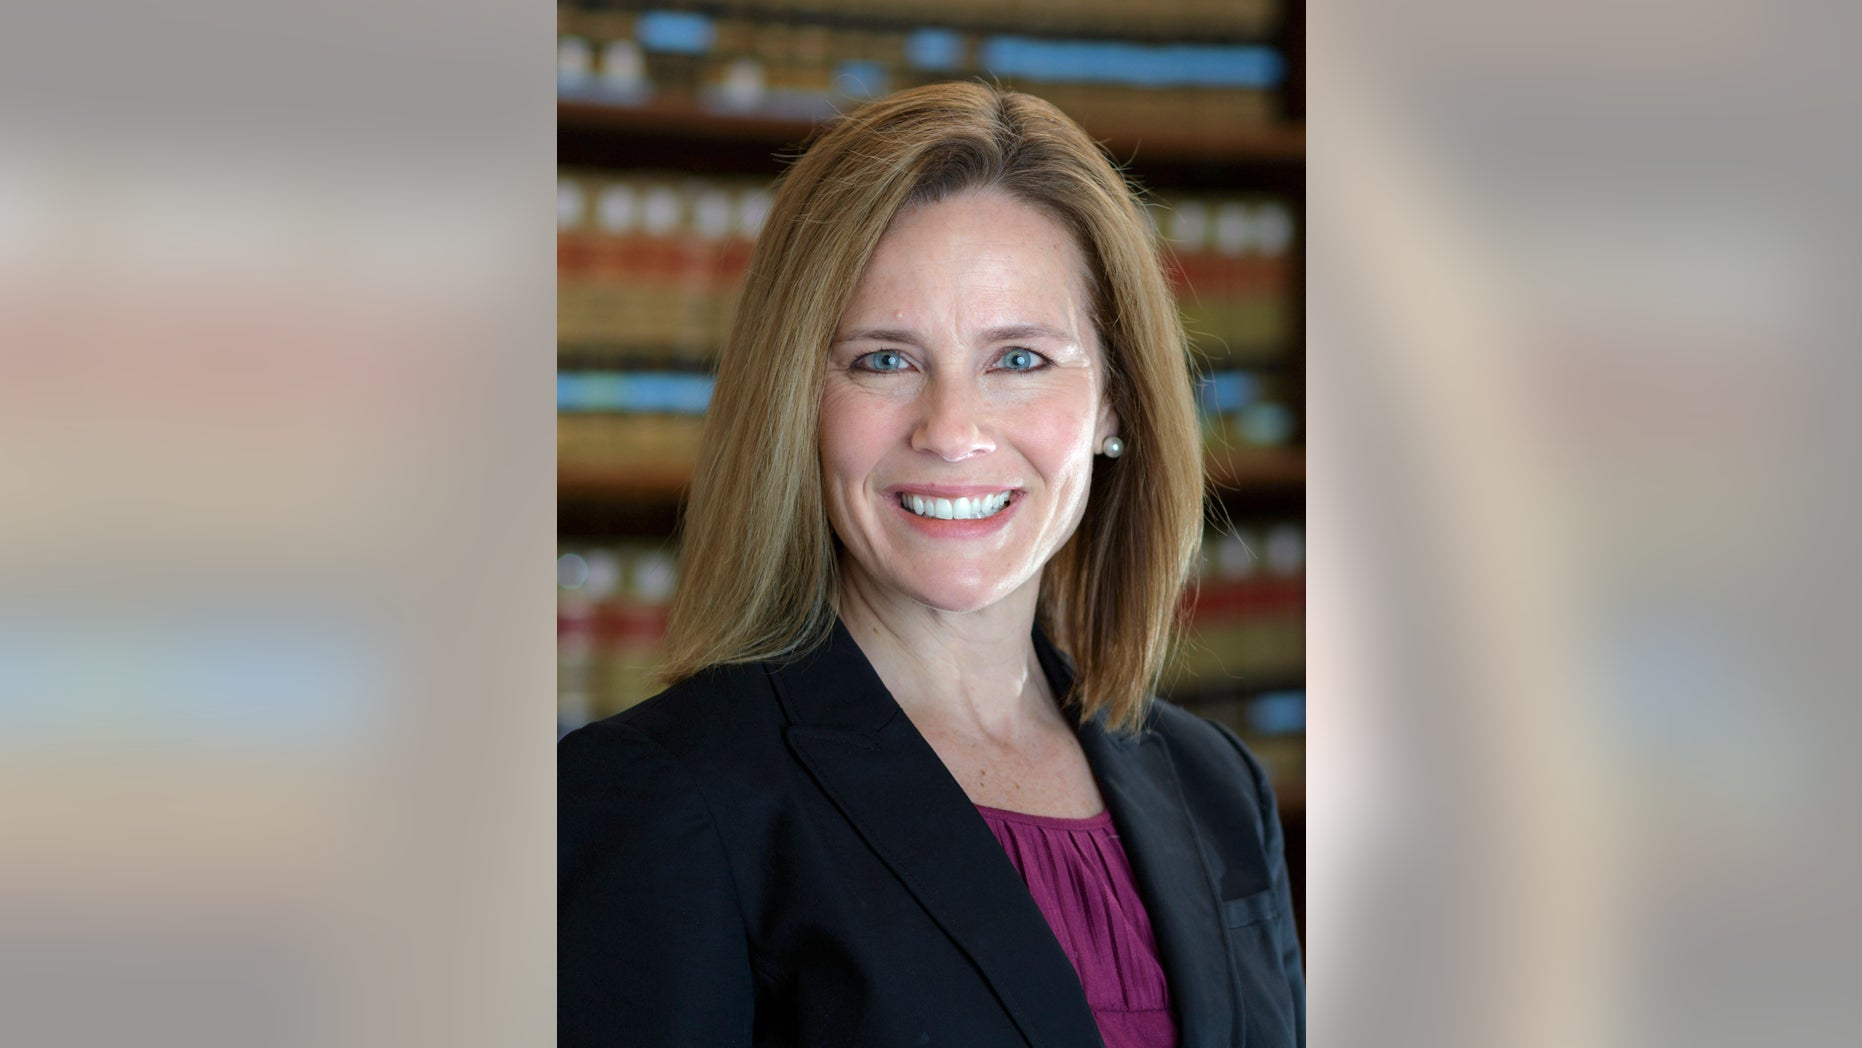 Amy Coney Barrett's faith came under question in 2017 when she was appointed to the U.S. Court of Appeals for the Seventh Circuit. She is reportedly on the short list for President Trump's Supreme Court pick.